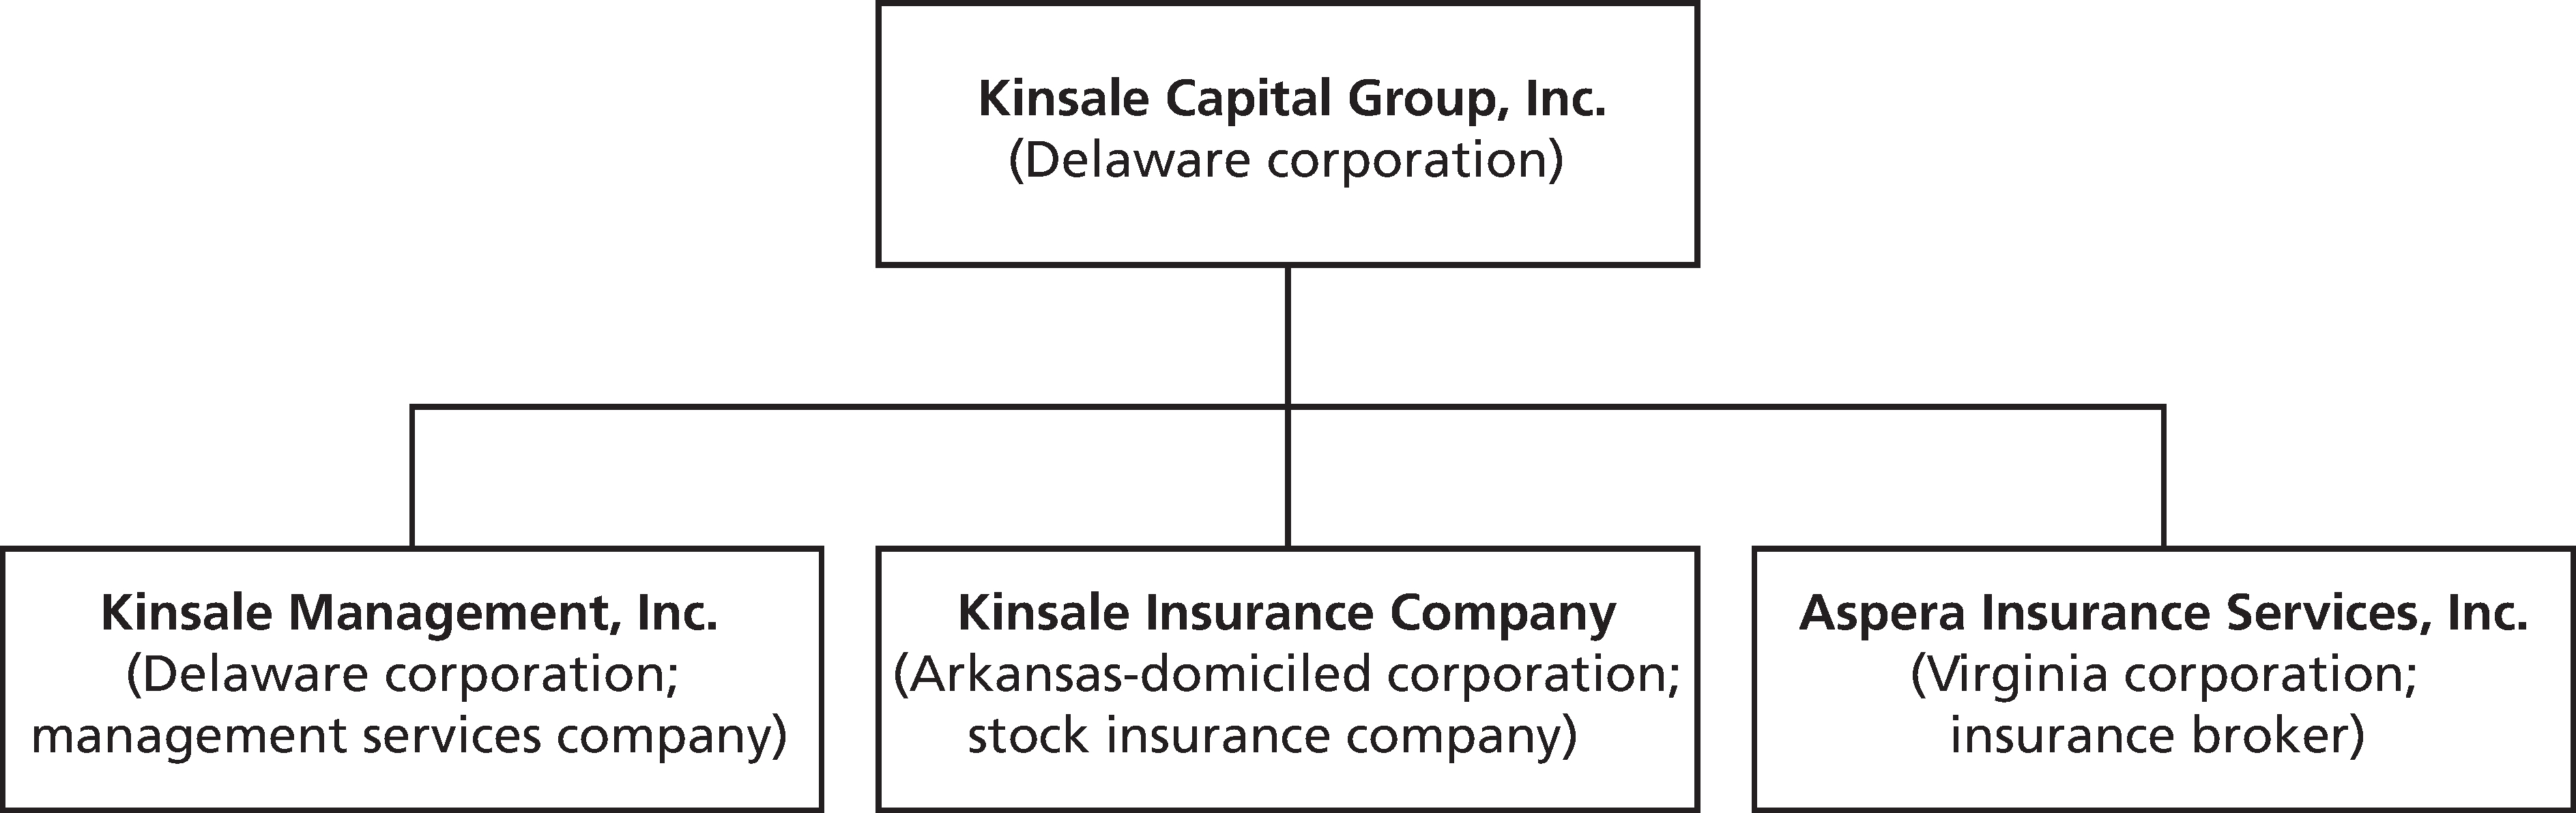 Sec Filing Kinsale Capital Group Inc